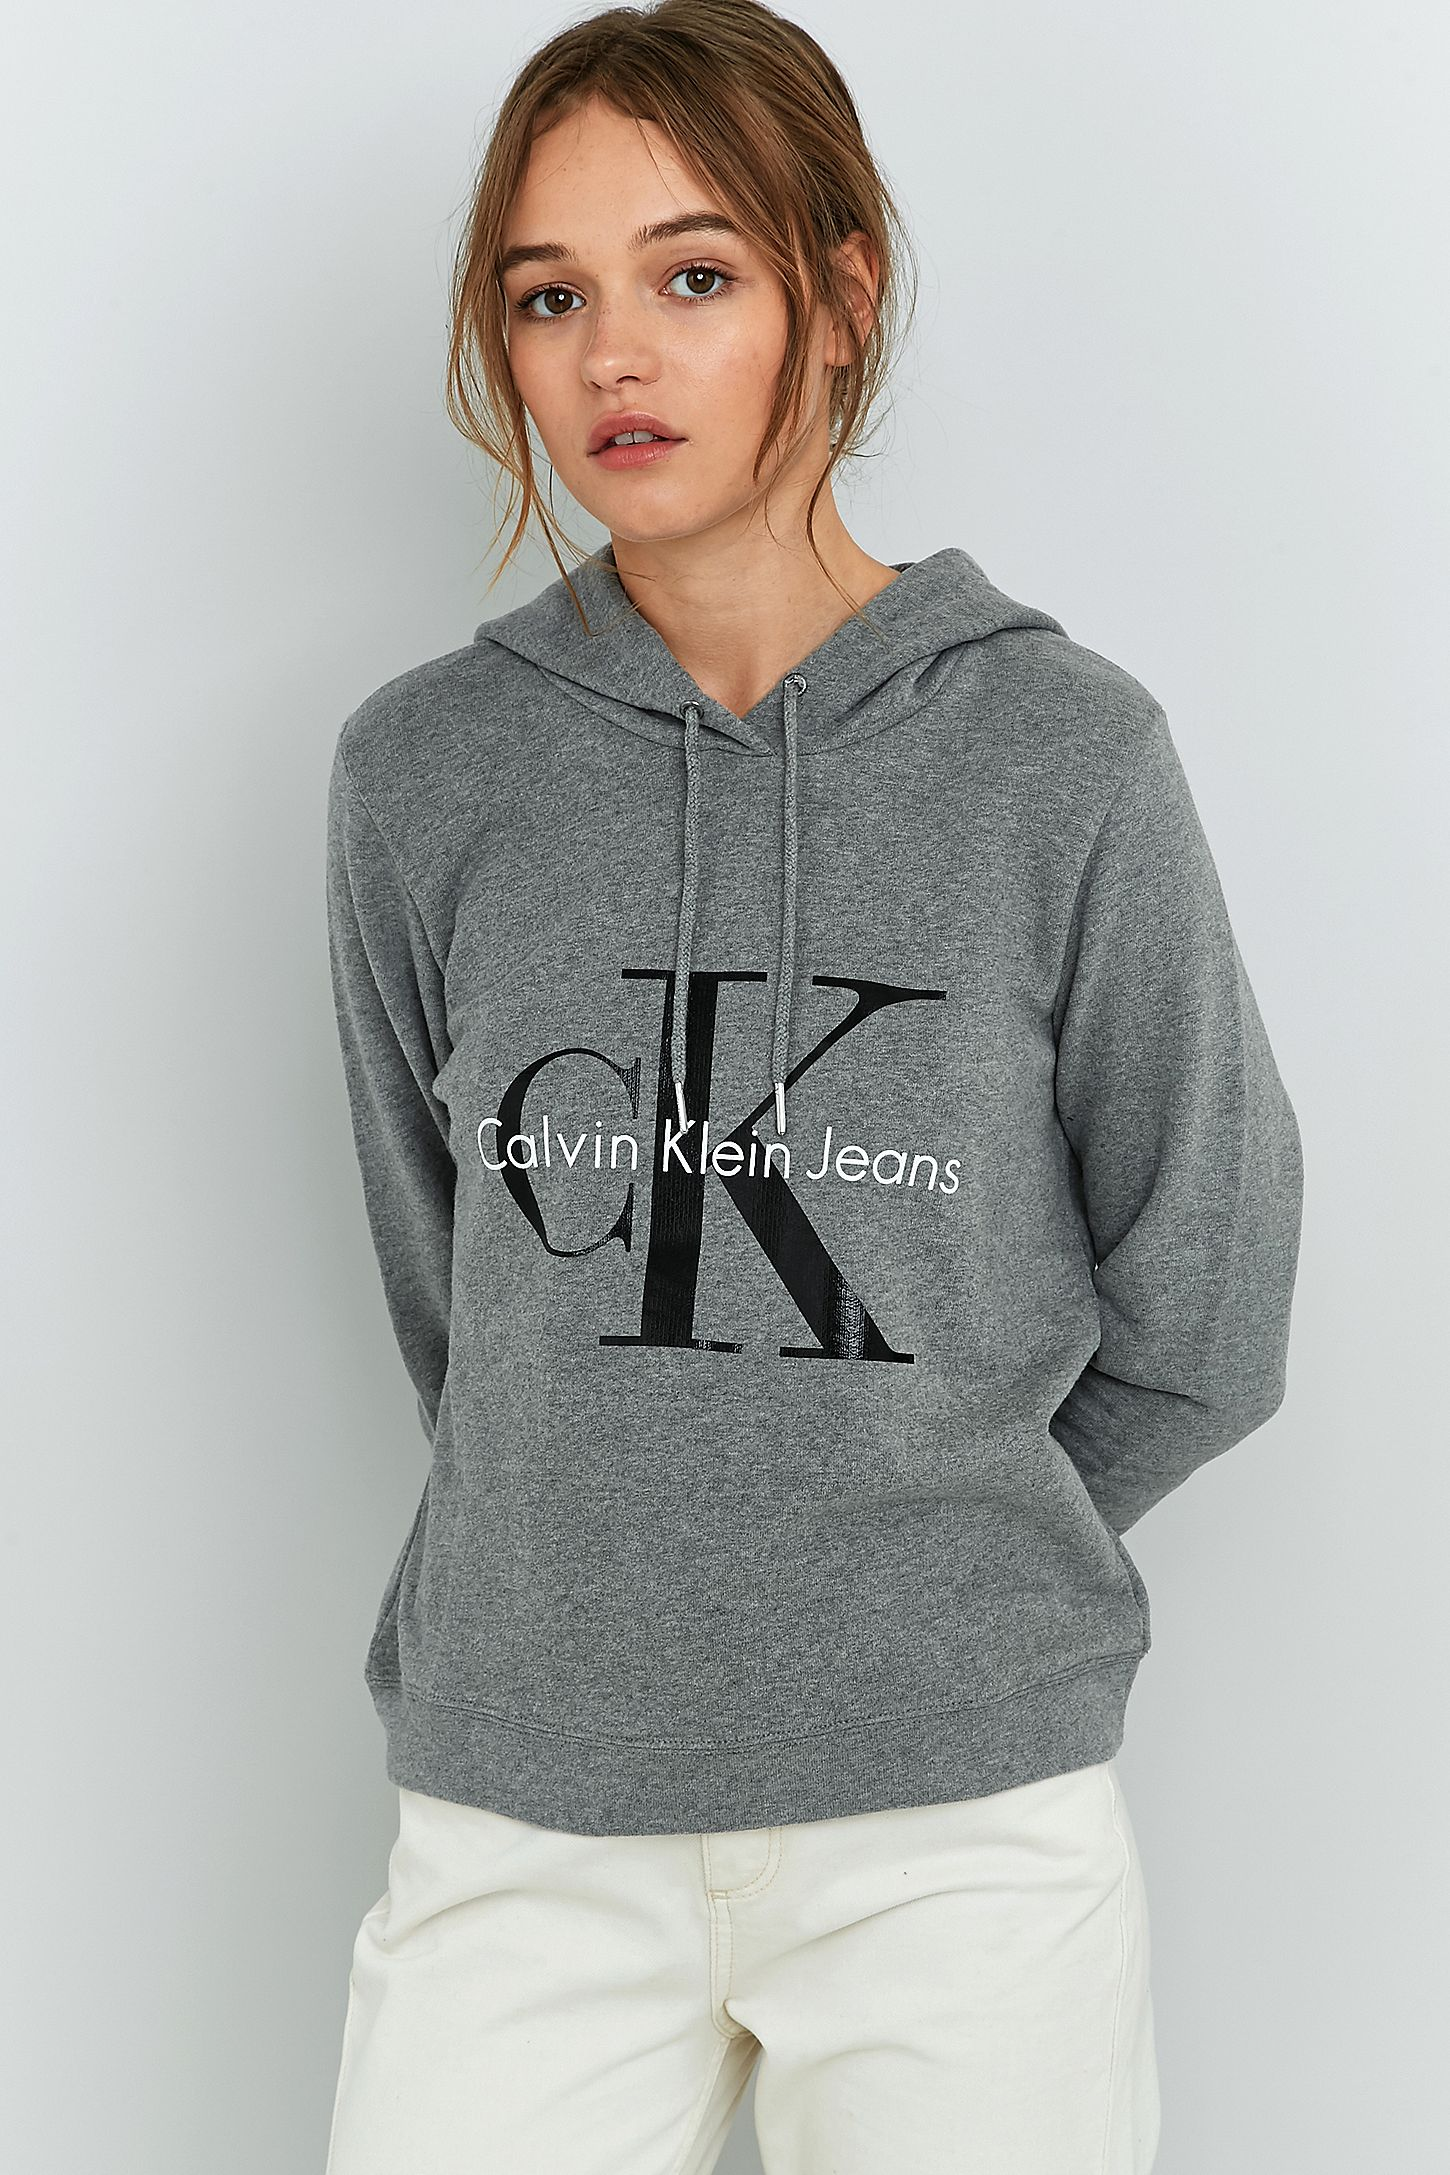 52902a217c1bb Calvin Klein Grey Logo Hoodie. Click on image to zoom. Hover to zoom.  Double Tap to Zoom